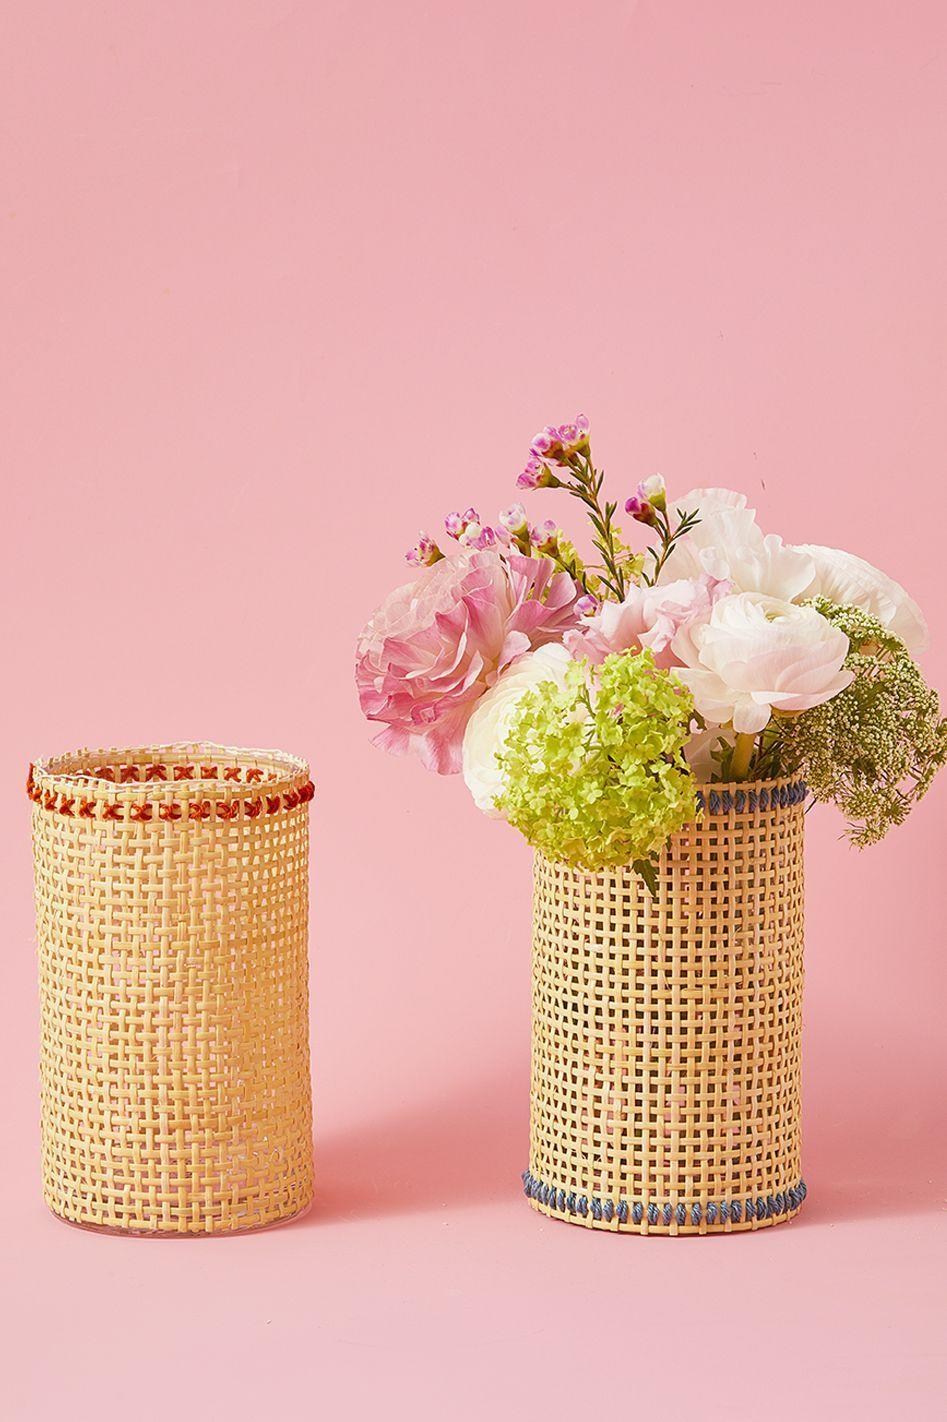 <p>Spruce up a plain glass vase to make your mom's fresh flowers really stand out. To make, cut a piece of cane webbing to fit around a glass hurricane vase. Thread a needle with contrasting yarn or embroidery thread and stitch a line or criss-cross pattern along the edges of the cane webbing. Wrap the webbing around the vase and adhere with hot glue.</p>